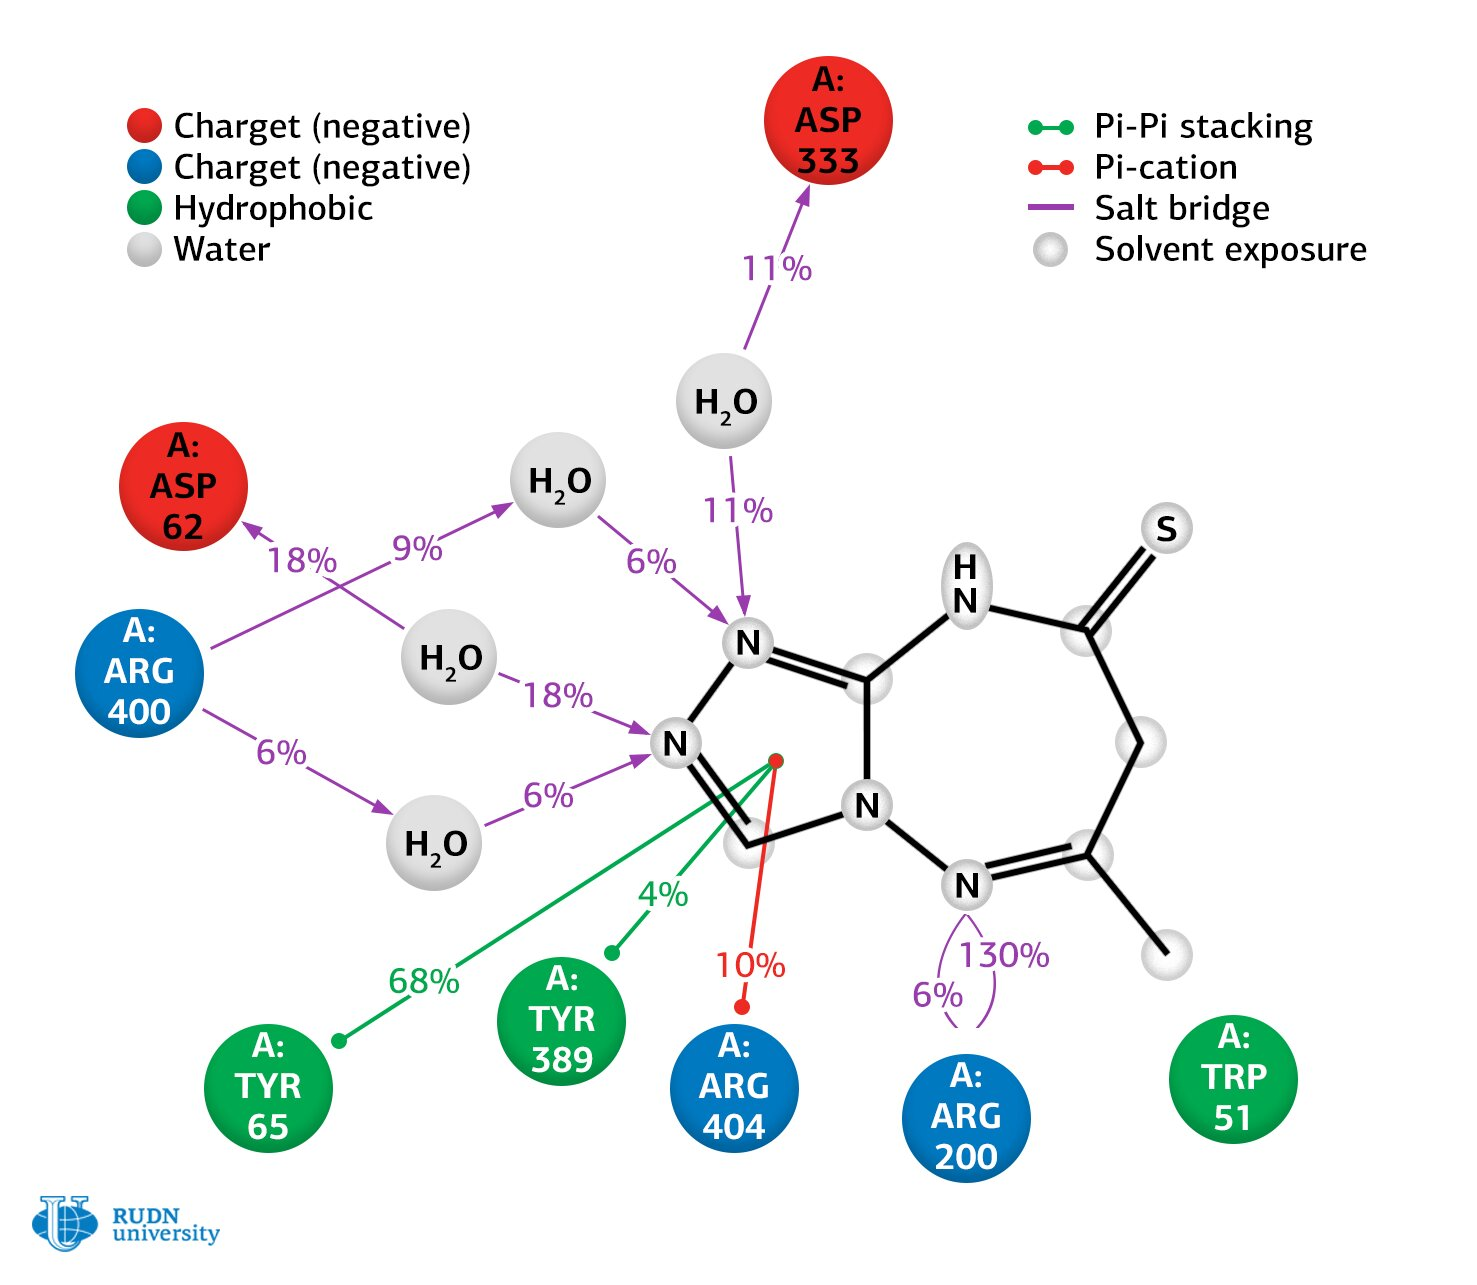 Chemist synthesizes new compounds with strong antidiabetic properties